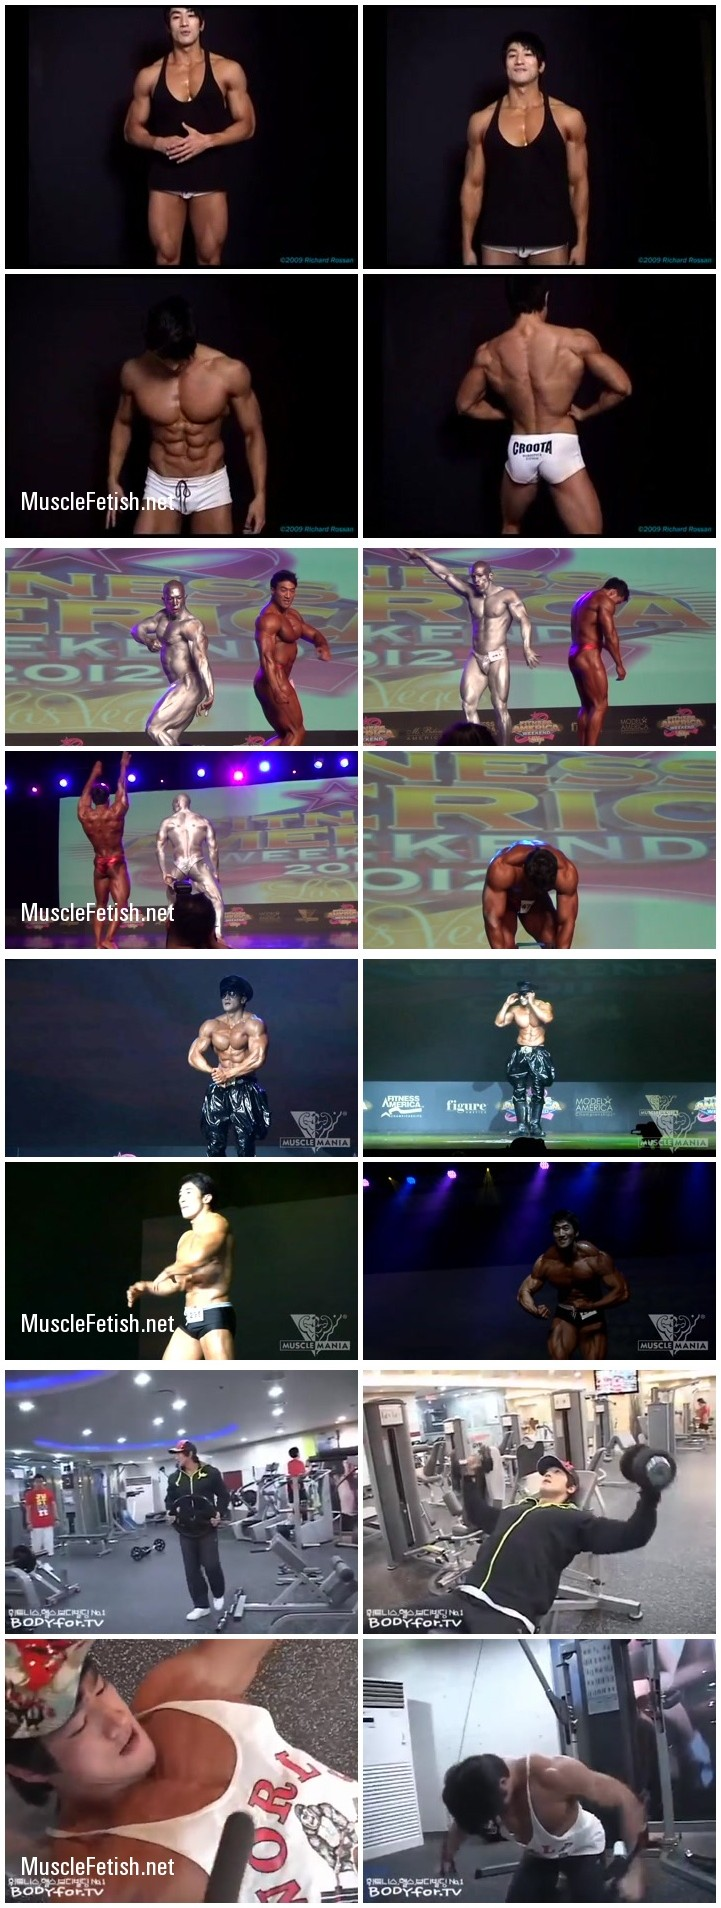 Hot korean bodybuilder Hwang ChulSoon - video and image collection